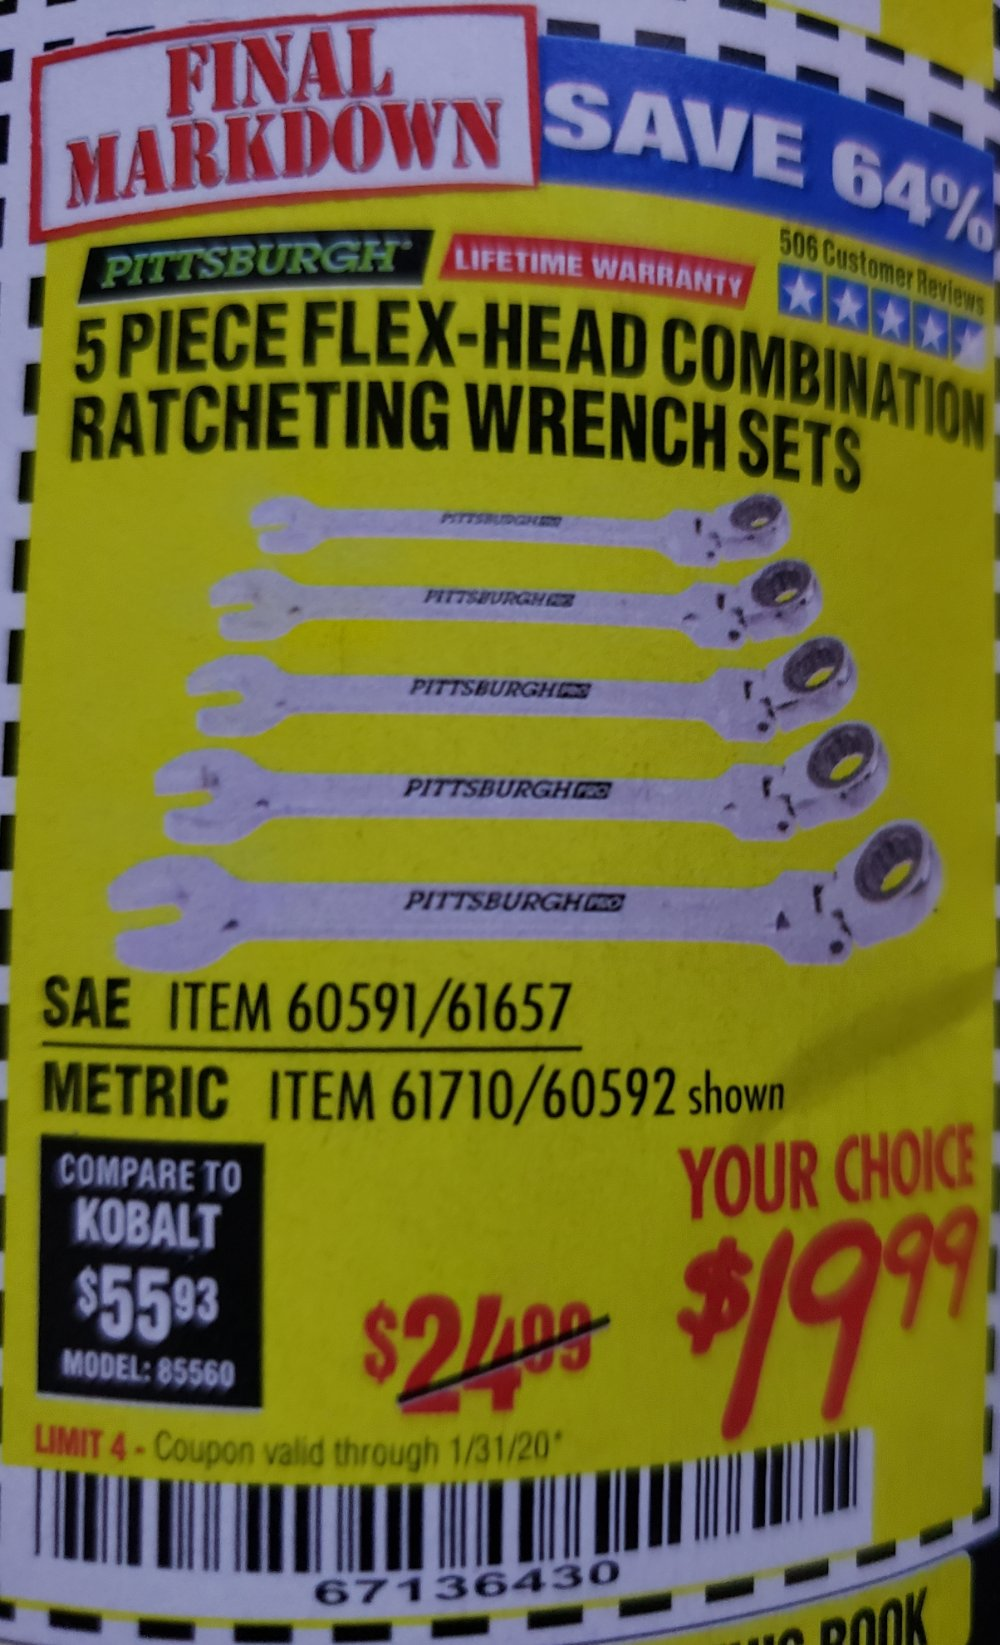 Harbor Freight Coupon, HF Coupons - 5 Piece Flex-head Combo Wrench Sets